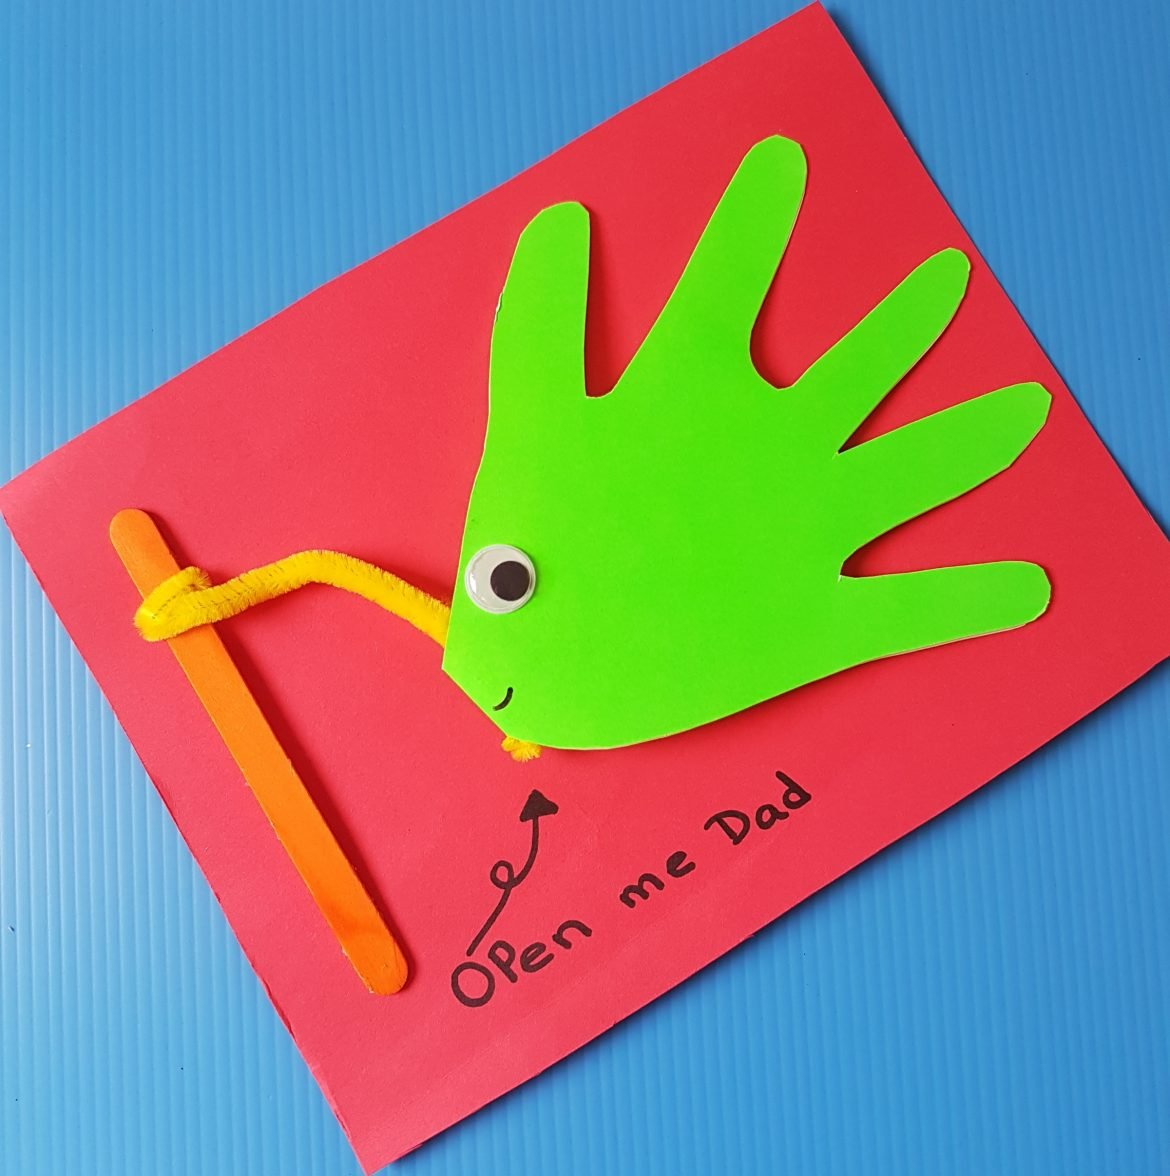 Handprint Father's Day Craft #handprintfathersdaycraft #fathersdaycard #fathersdaycraft #fathersdayactivity